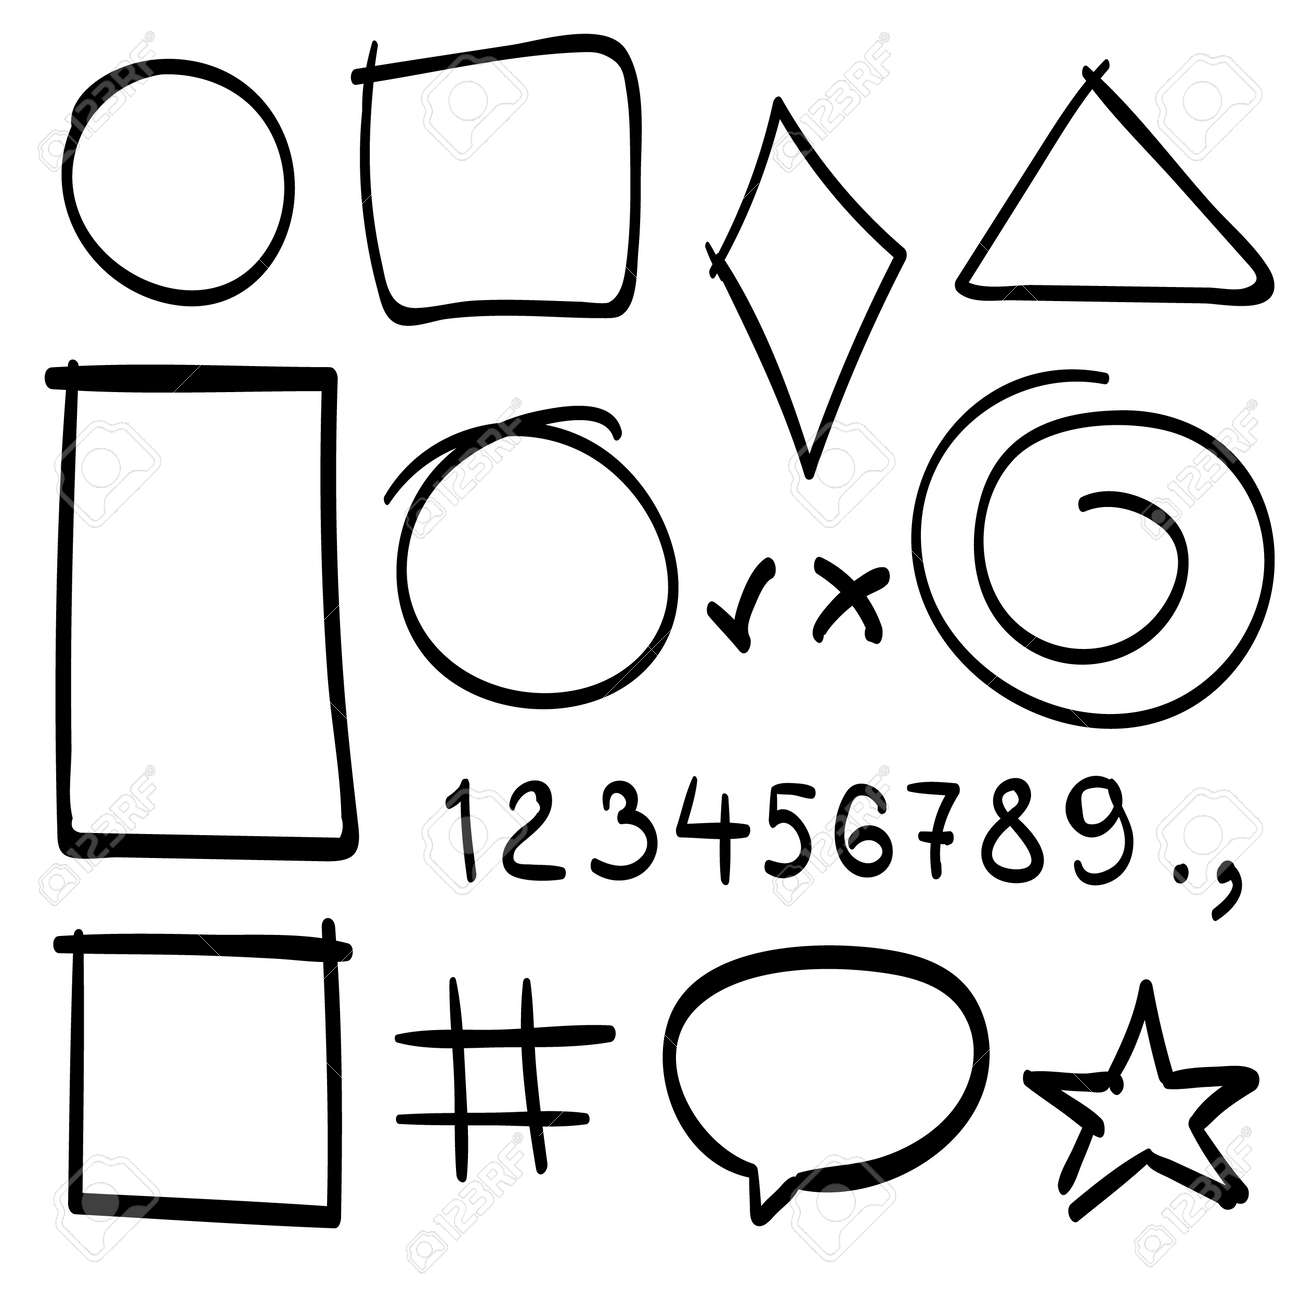 Sketch Symbols Sign And Geometric Shapes Sketch Figure Icons